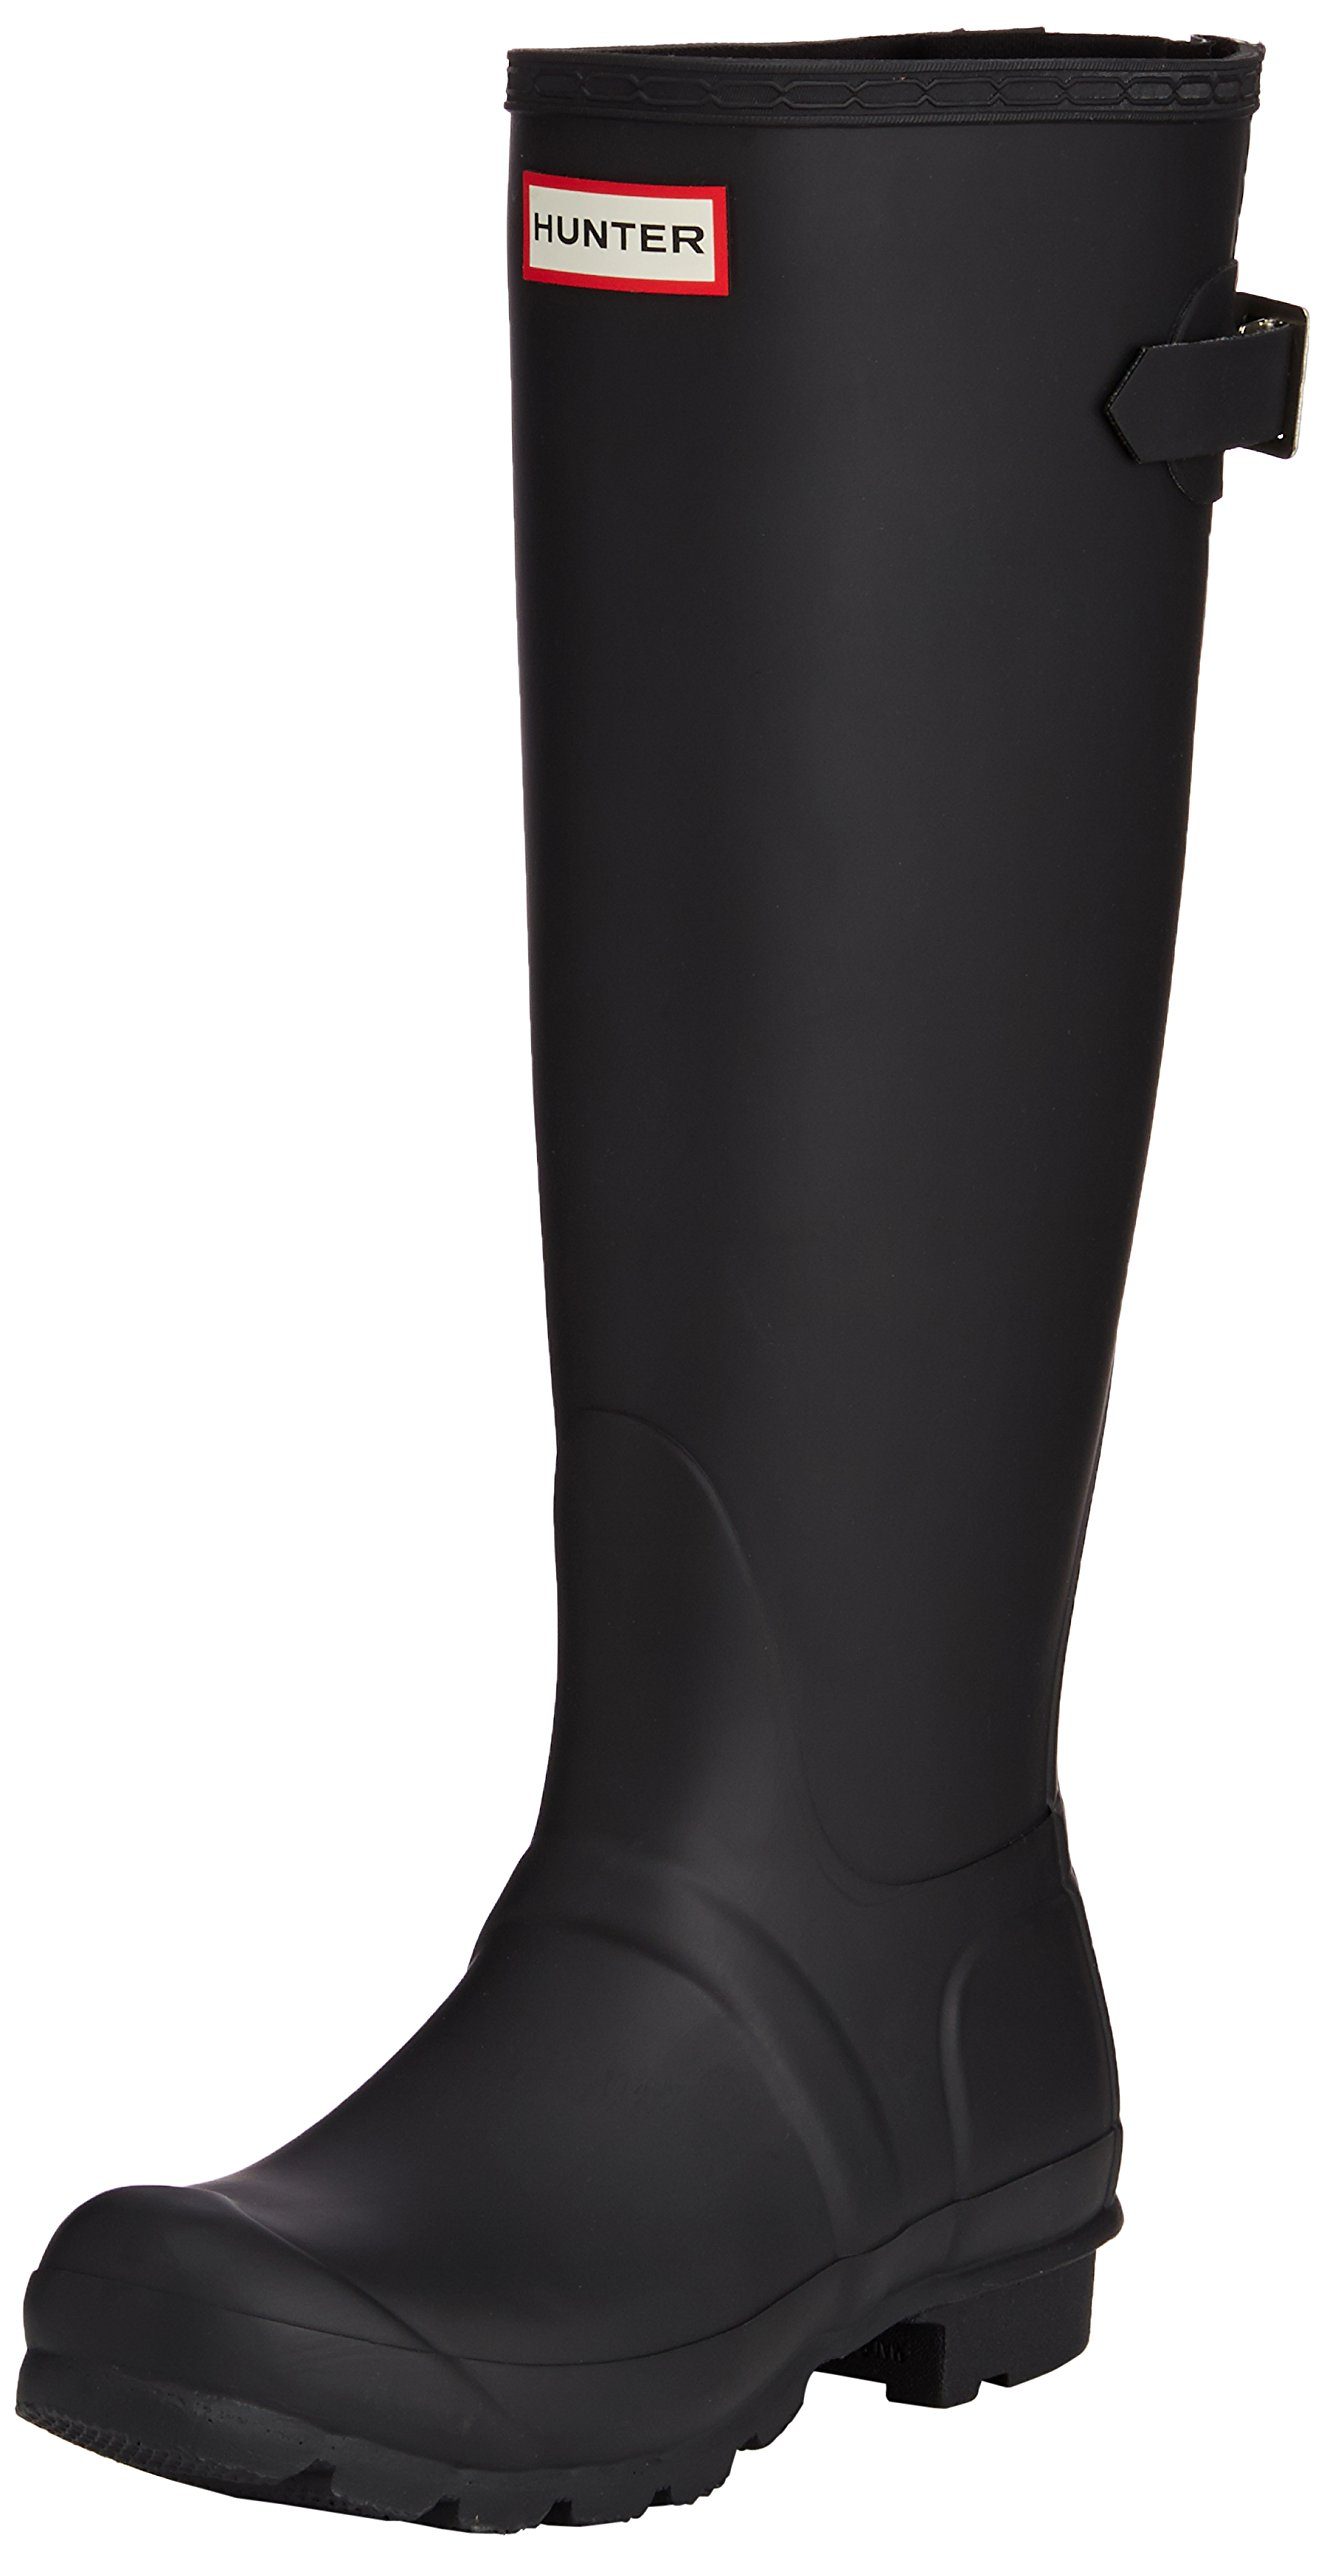 Hunter Womens Original Back Adjustable Black Rain Boot - 7 by Hunter